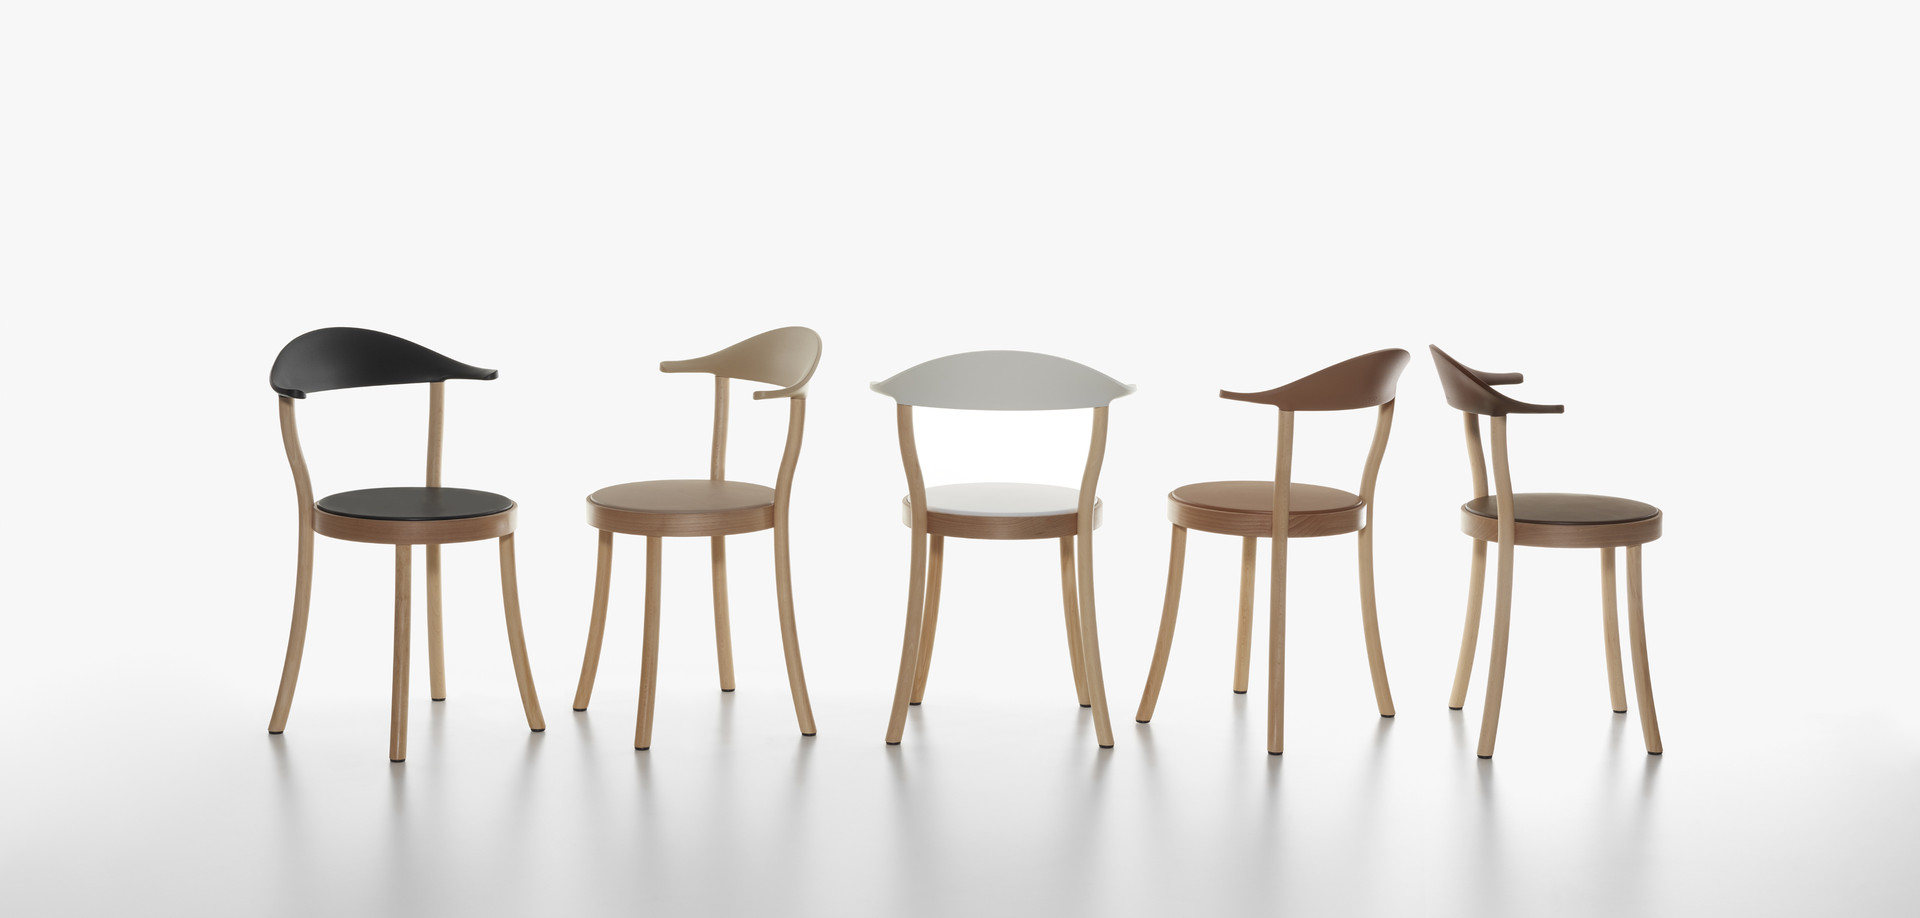 Plank - MONZA BISTRO chair, beech natural, backrests and seats in black, cafe latte, white, caramel, terra brown.